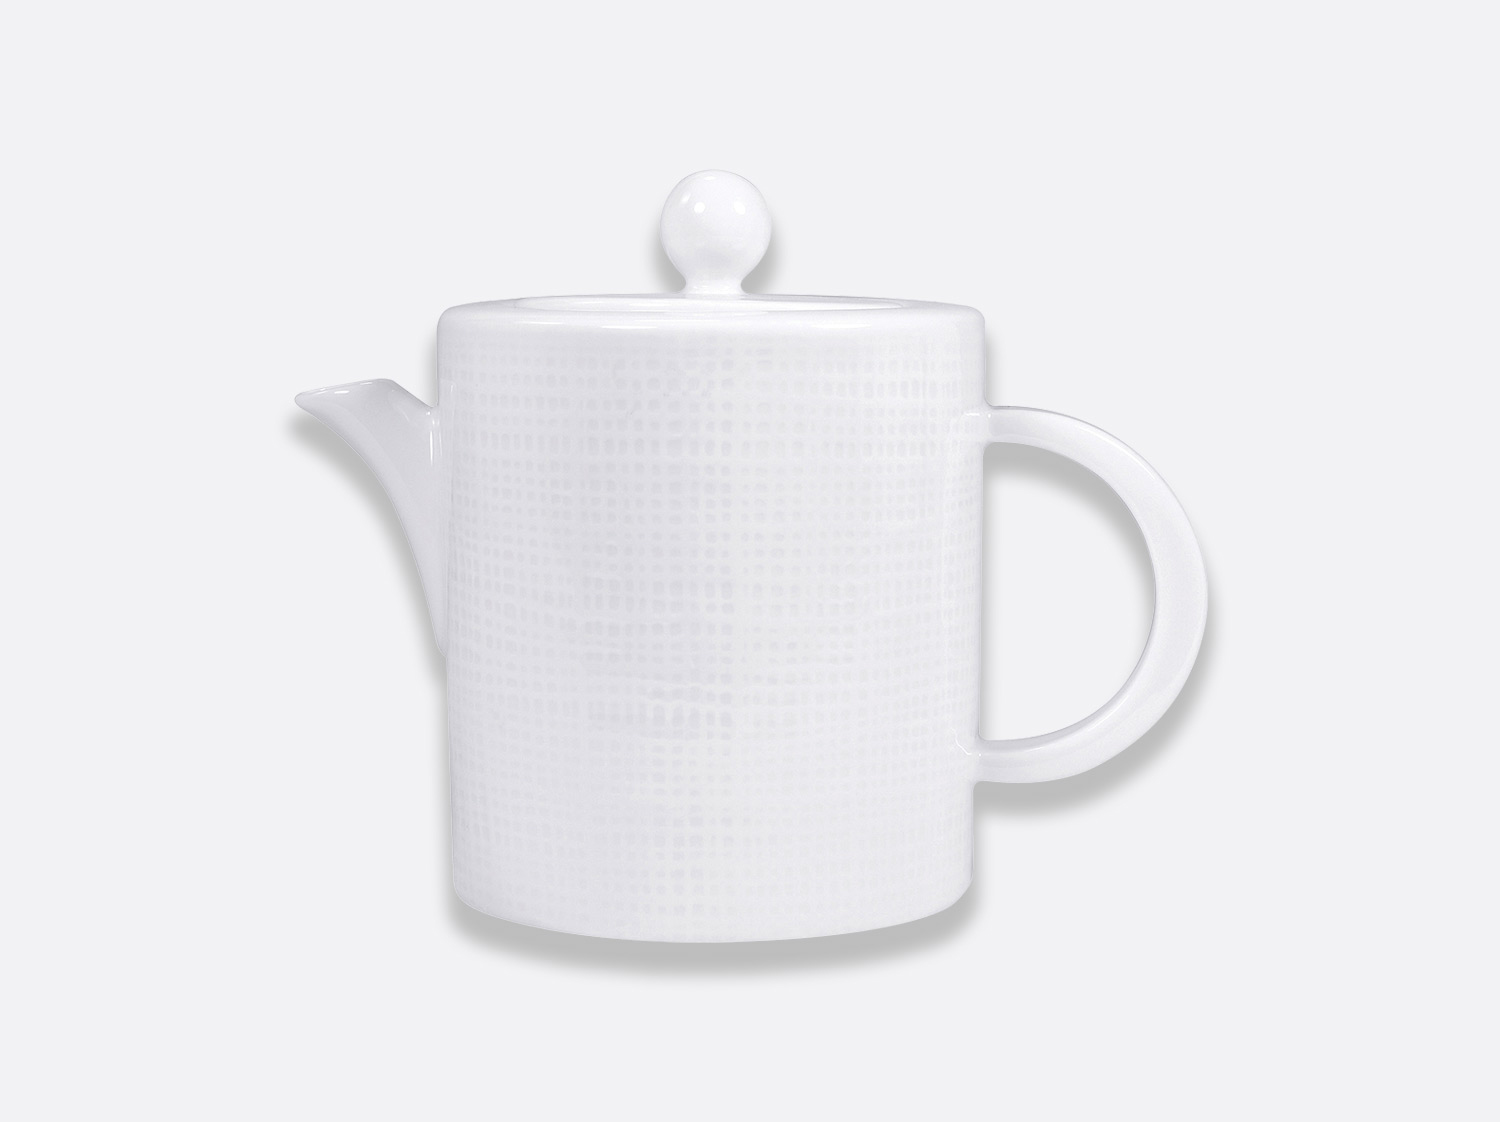 Verseuse 6 tasses 50 cl en porcelaine de la collection Organza Bernardaud